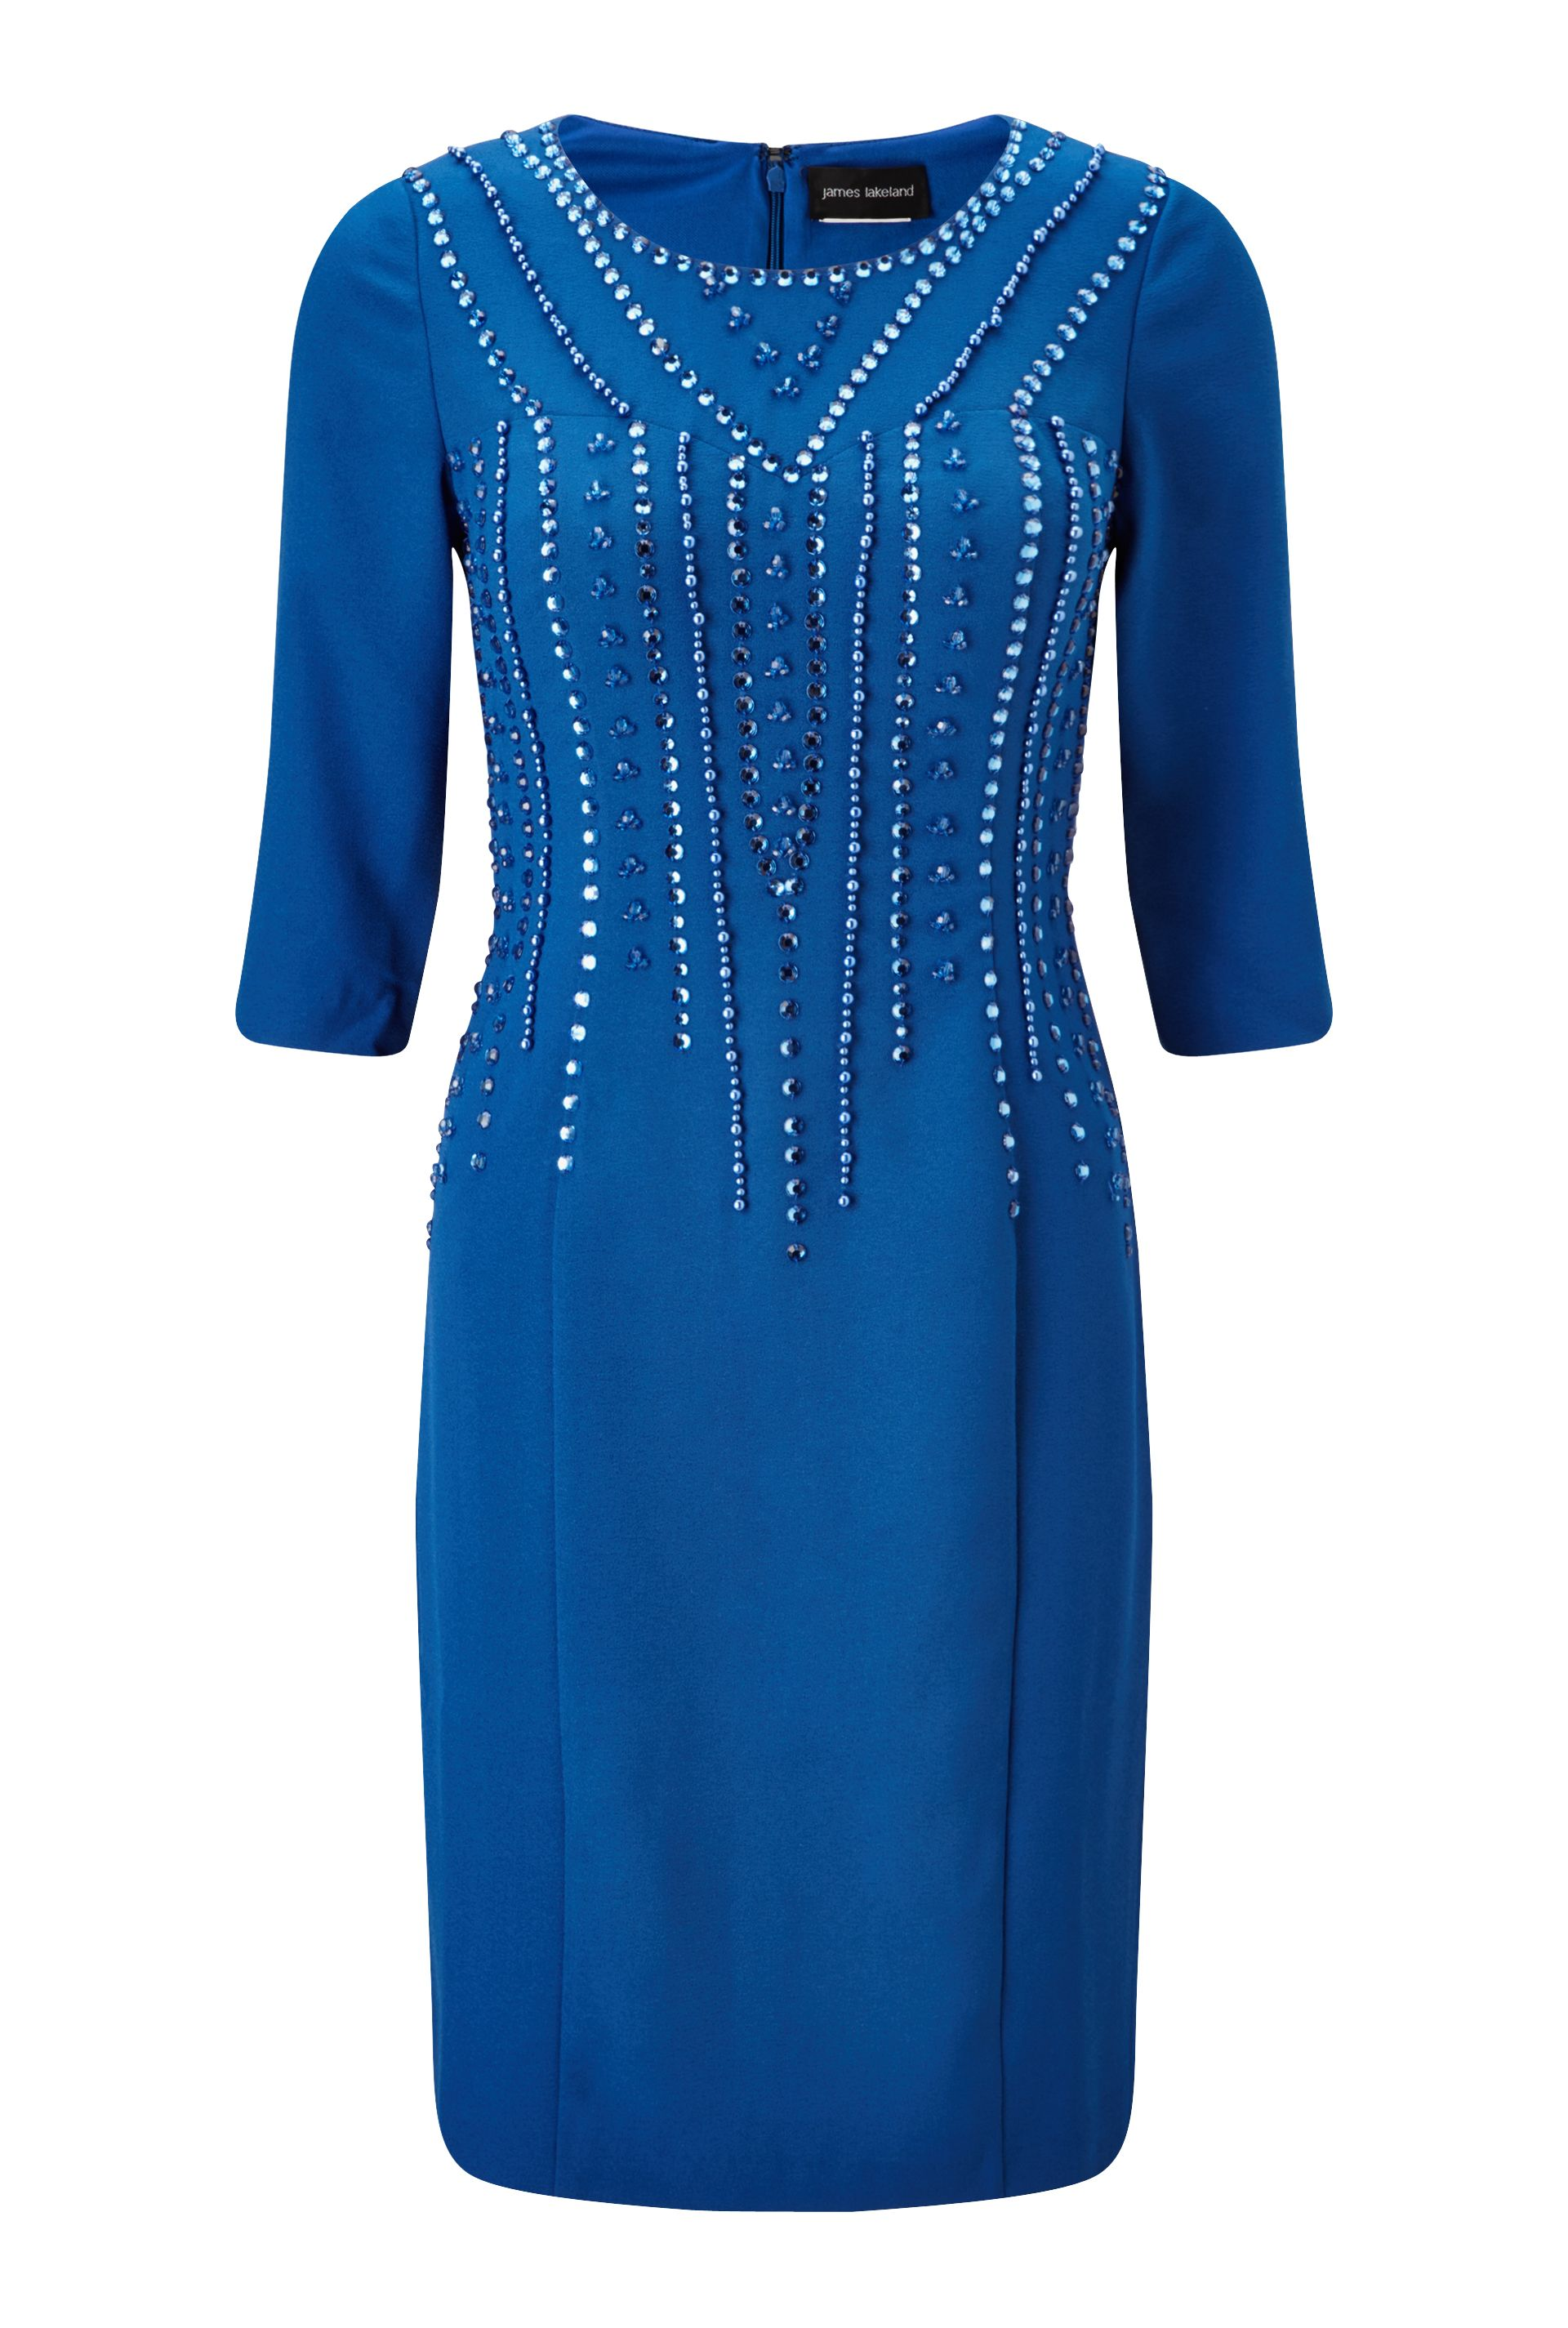 James Lakeland Beaded Dress, Blue